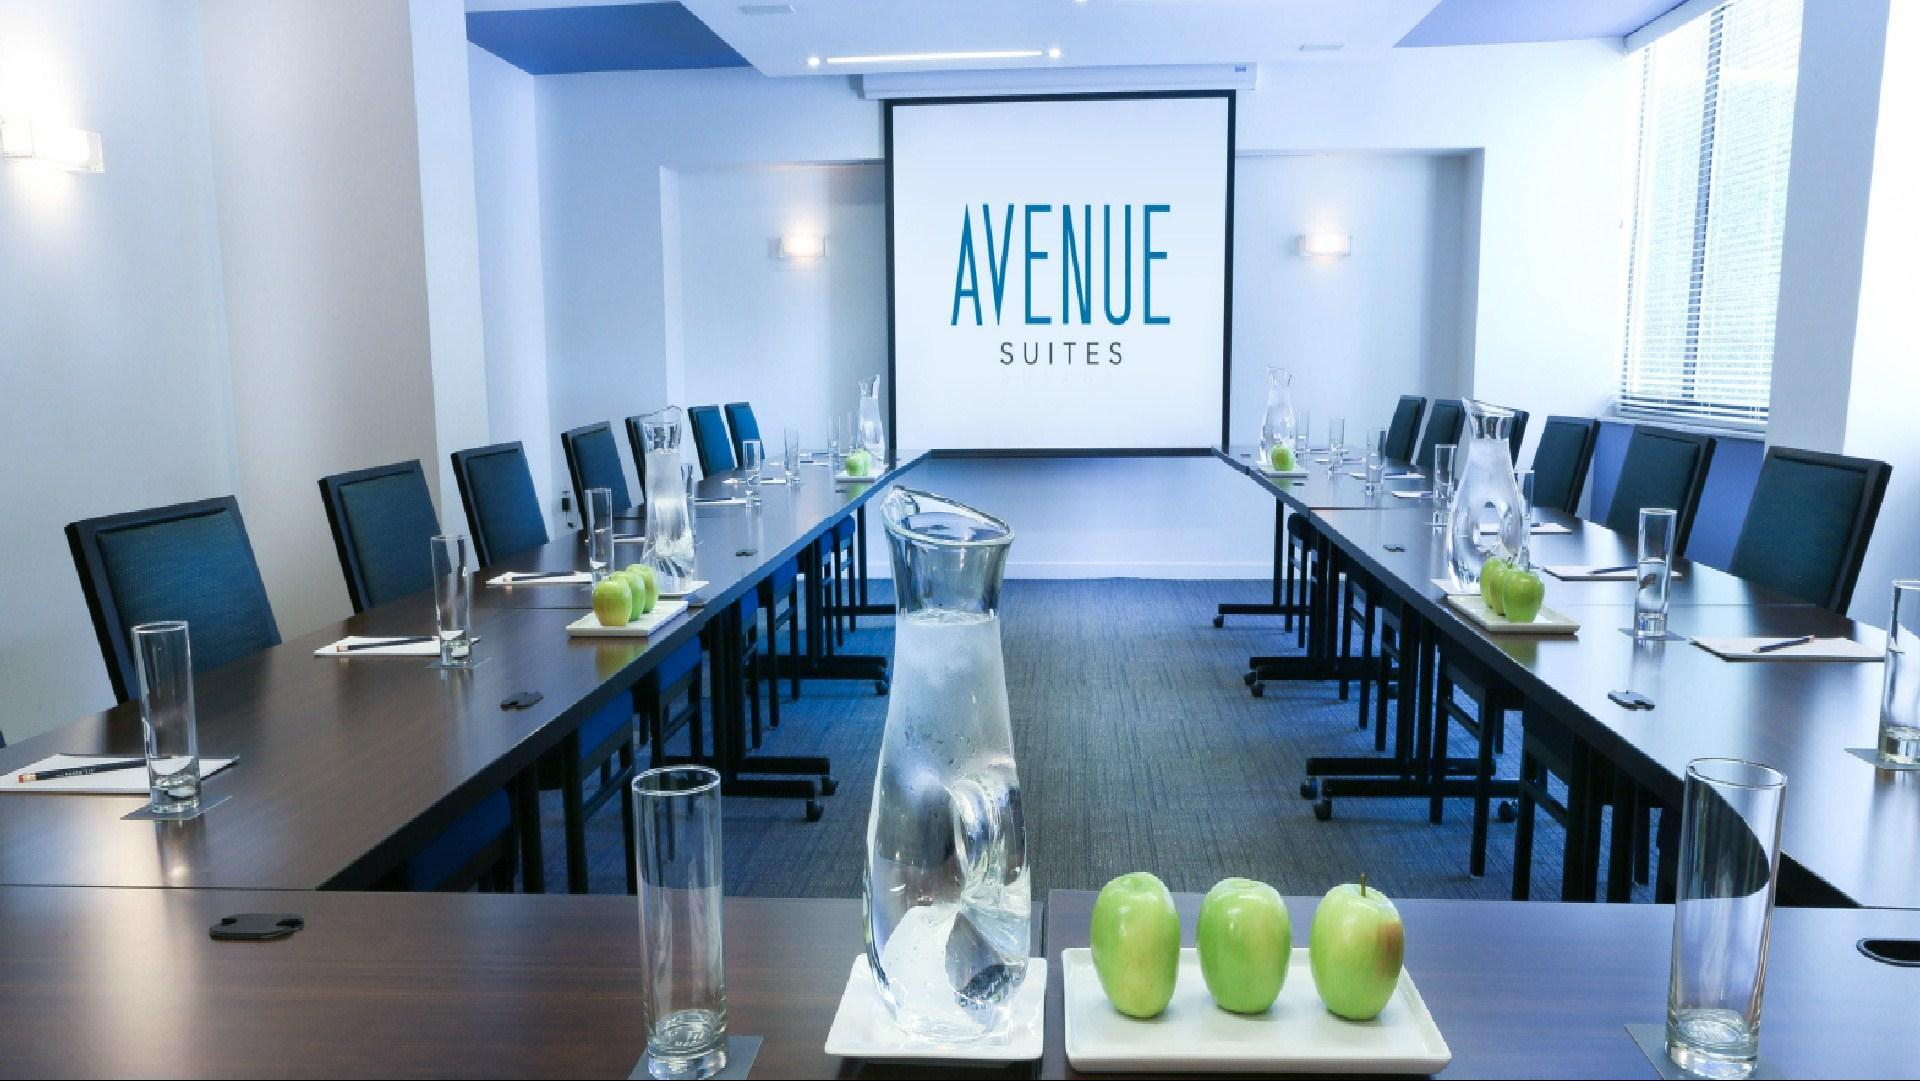 Avenue Suites event space in Washington DC, Maryland, Virginia, DC Area